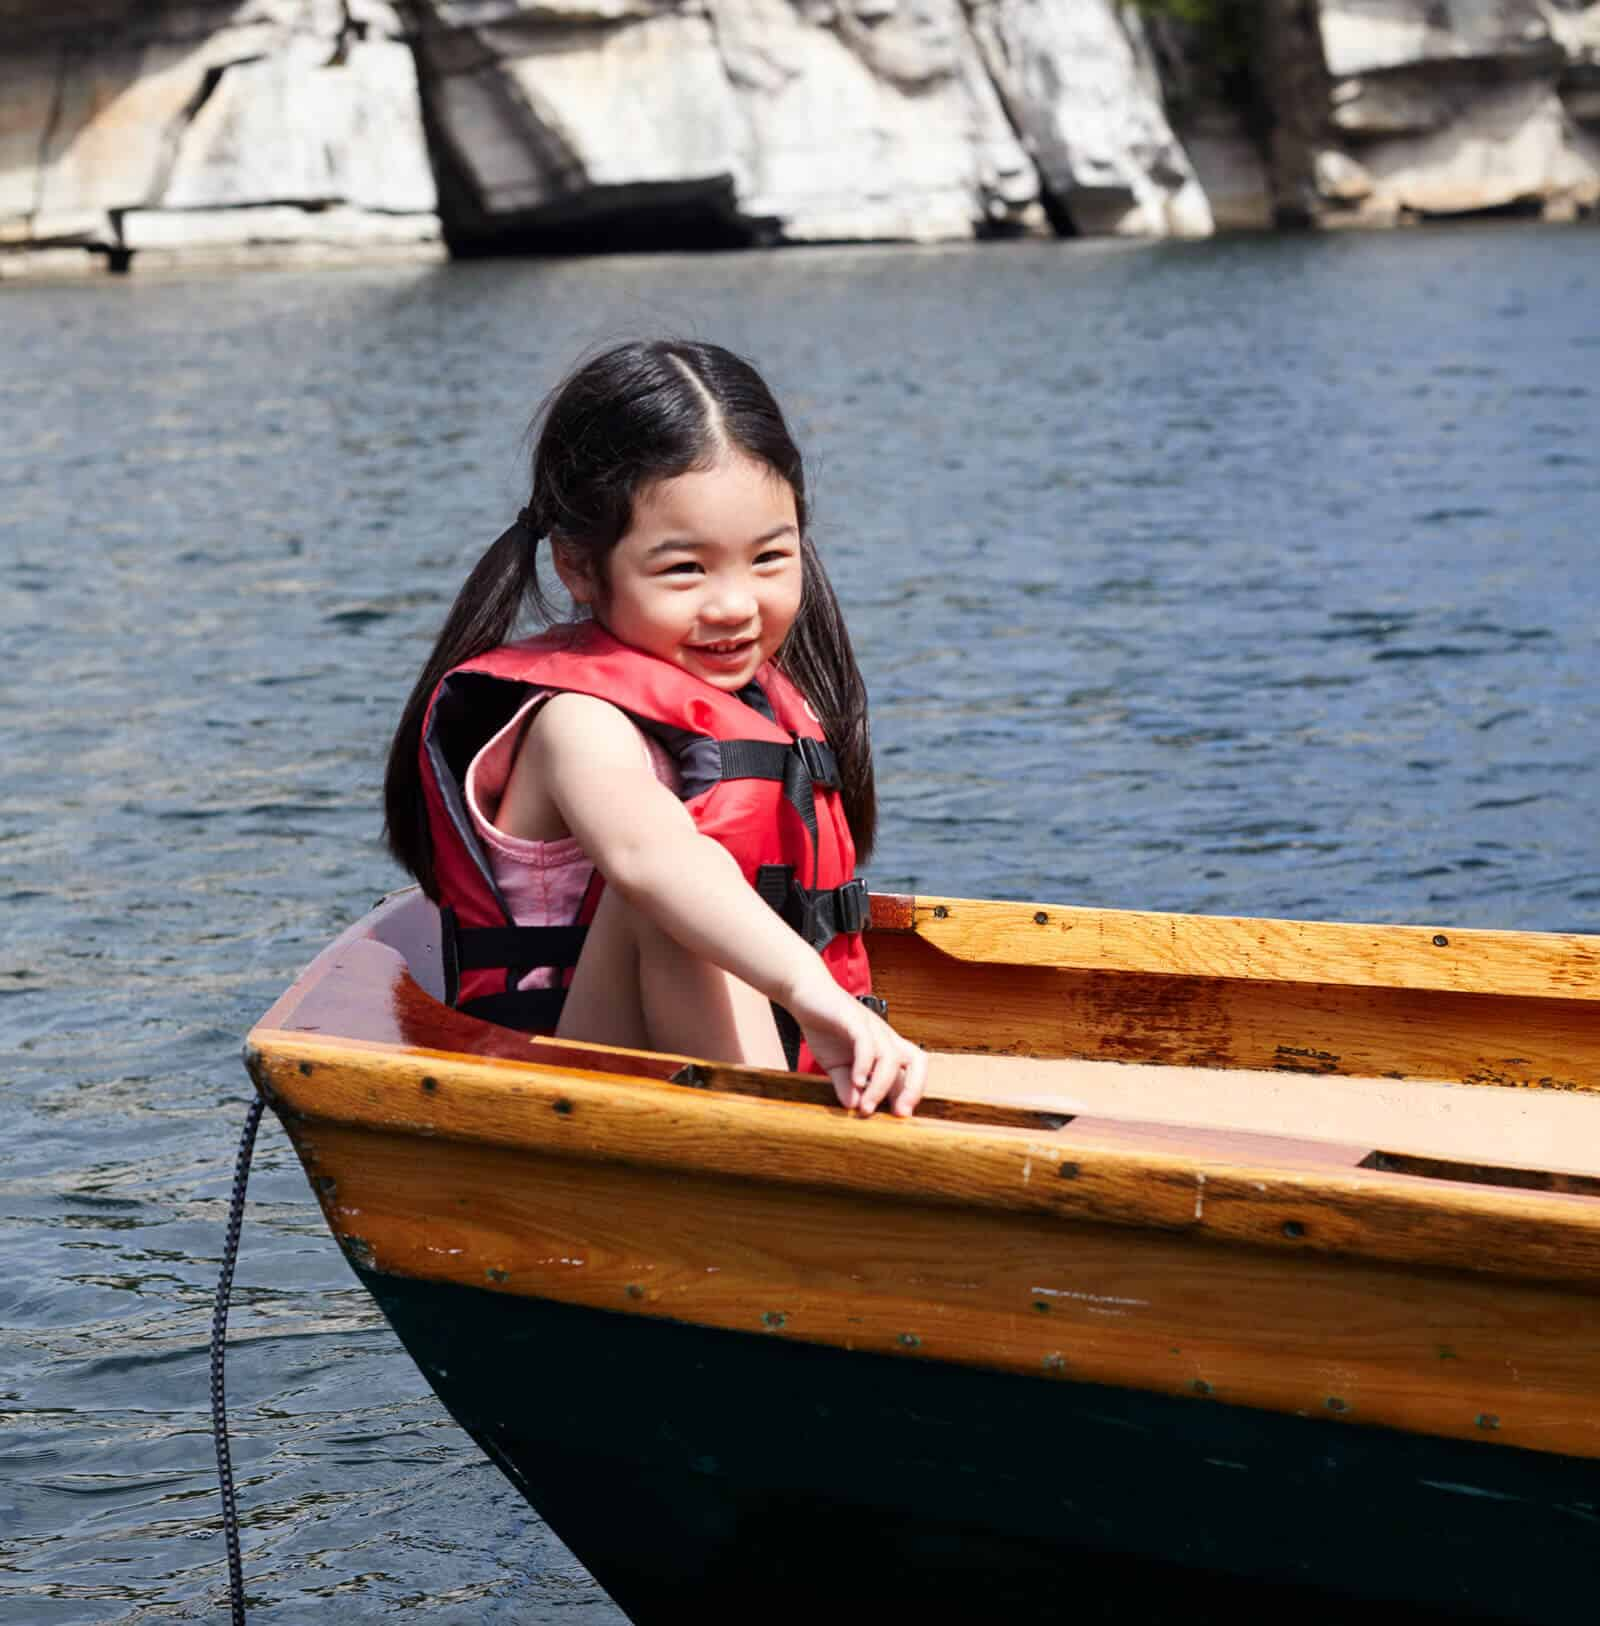 Young girl in row boat